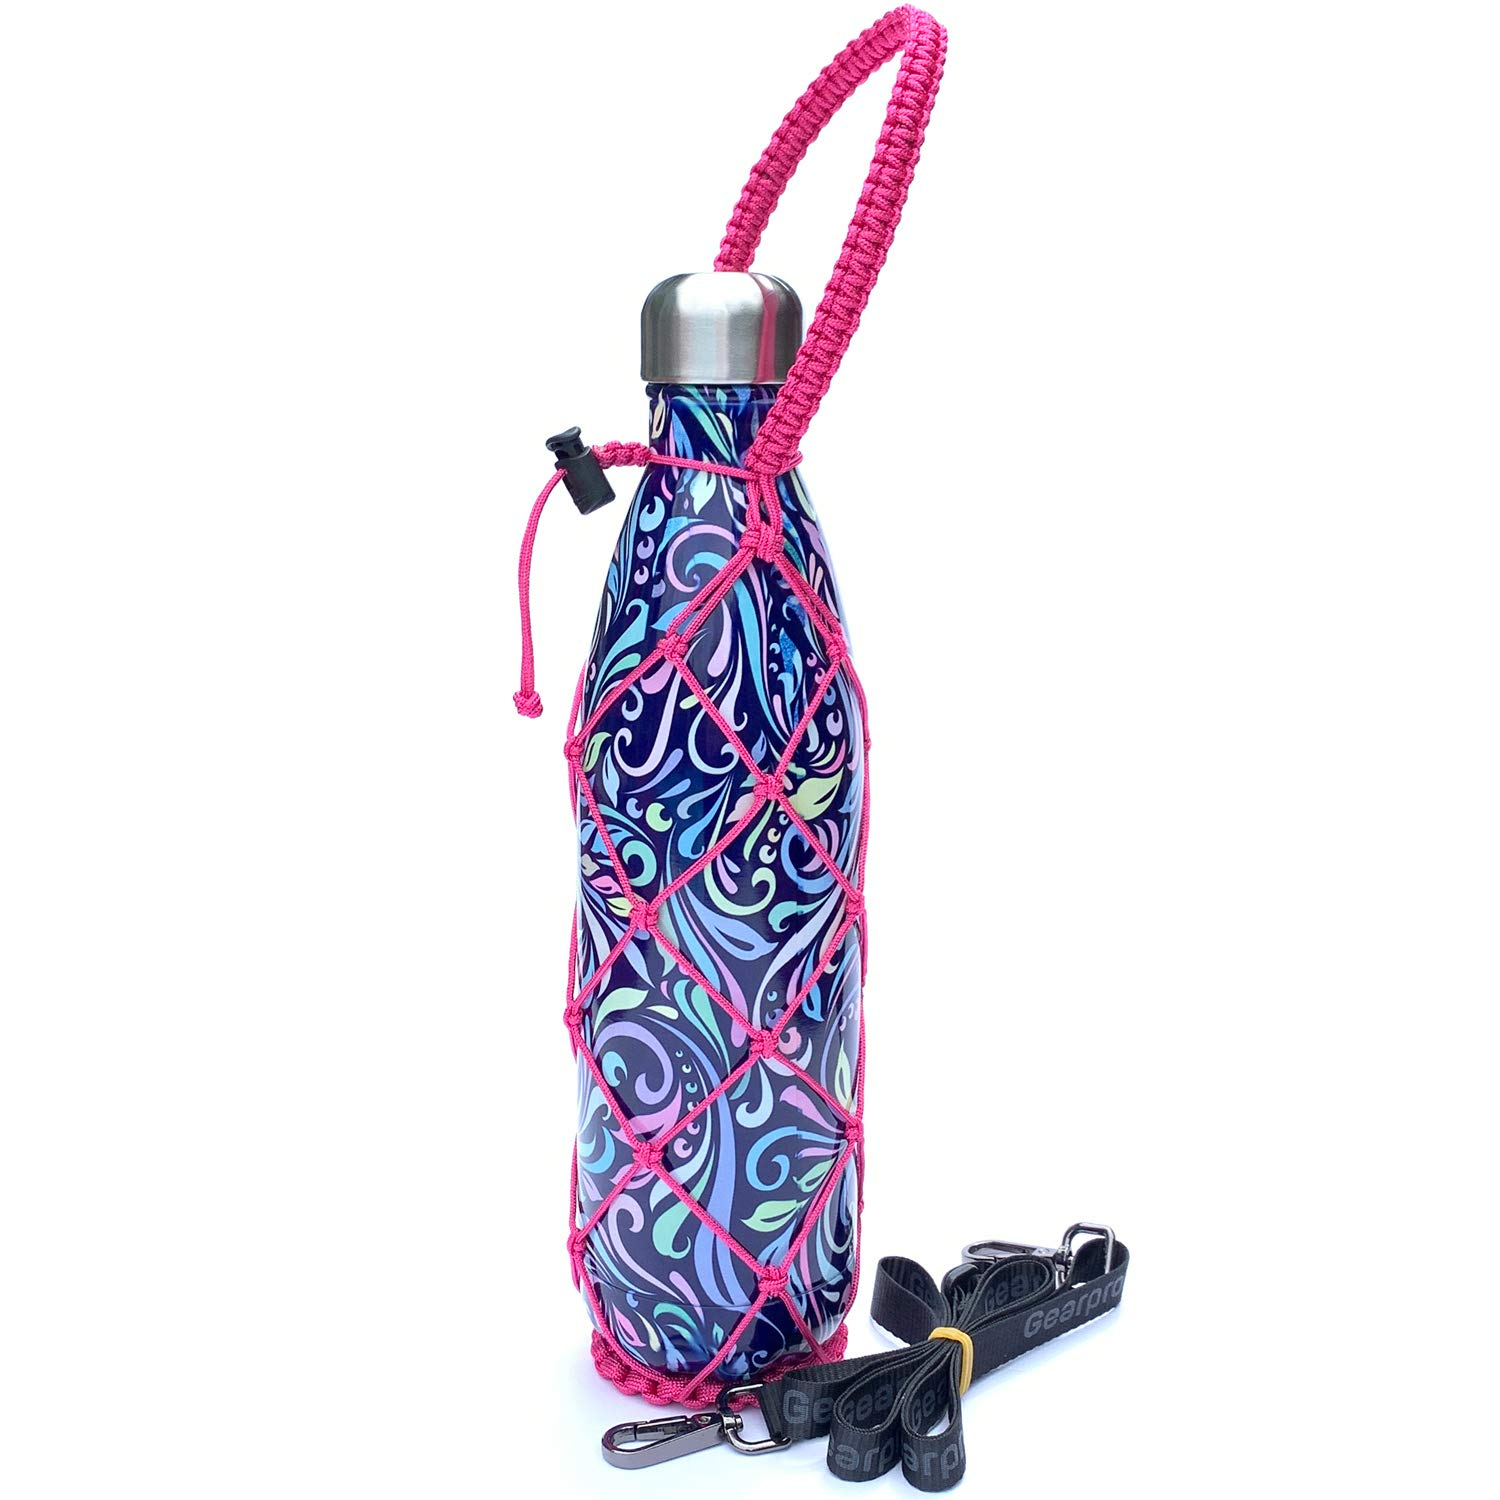 Gearproz Net for S'Well and Mira 25 oz Bottle - Carries and Protects Your Cola Shaped Bottles - with Detachable Shoulder Strap (Pink, 25 oz)